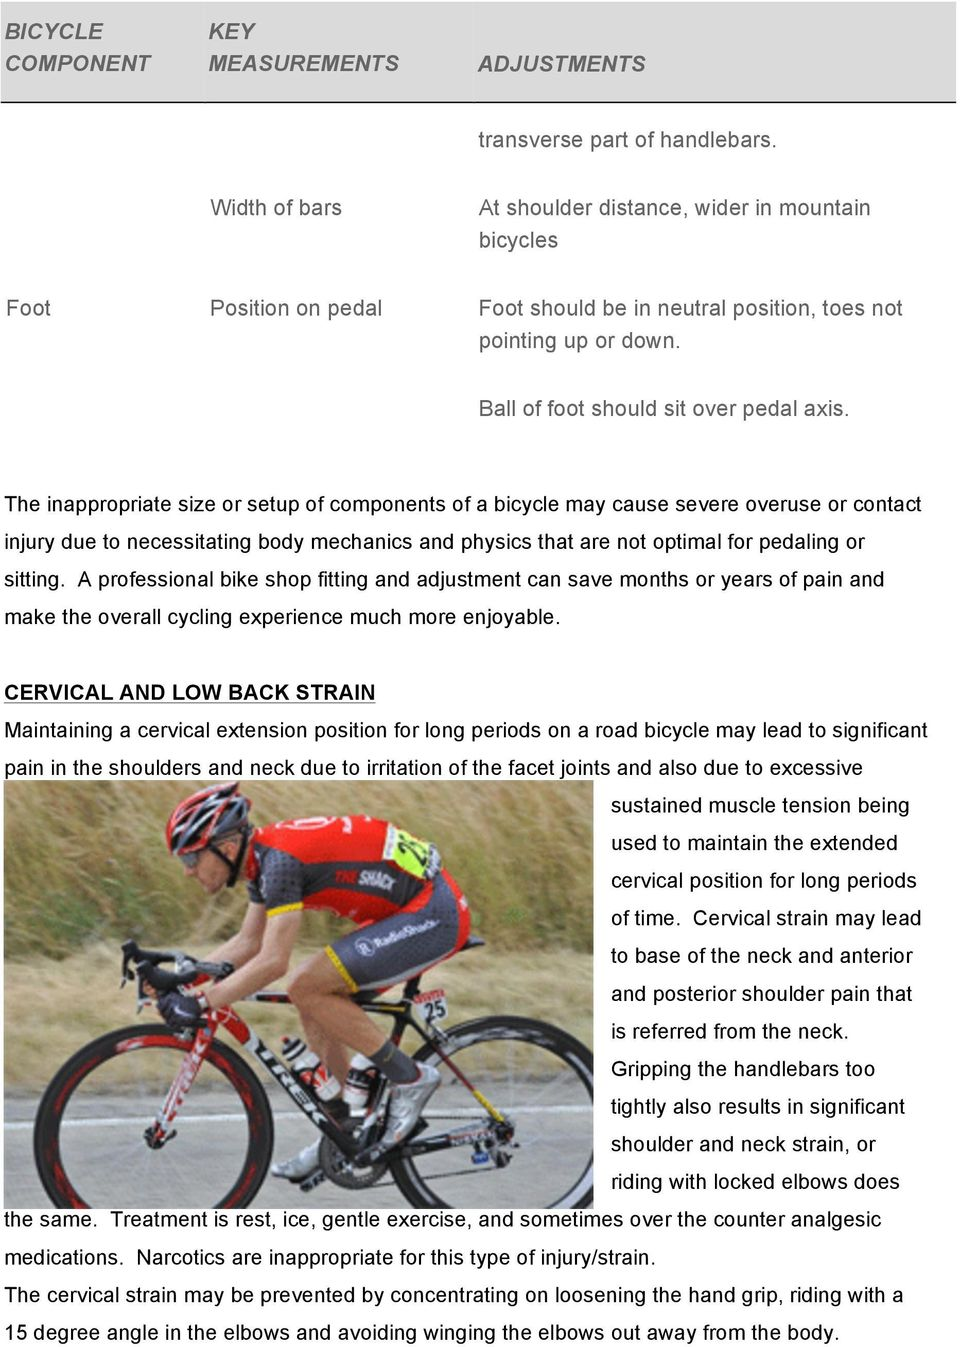 The inappropriate size or setup of components of a bicycle may cause severe overuse or contact injury due to necessitating body mechanics and physics that are not optimal for pedaling or sitting.